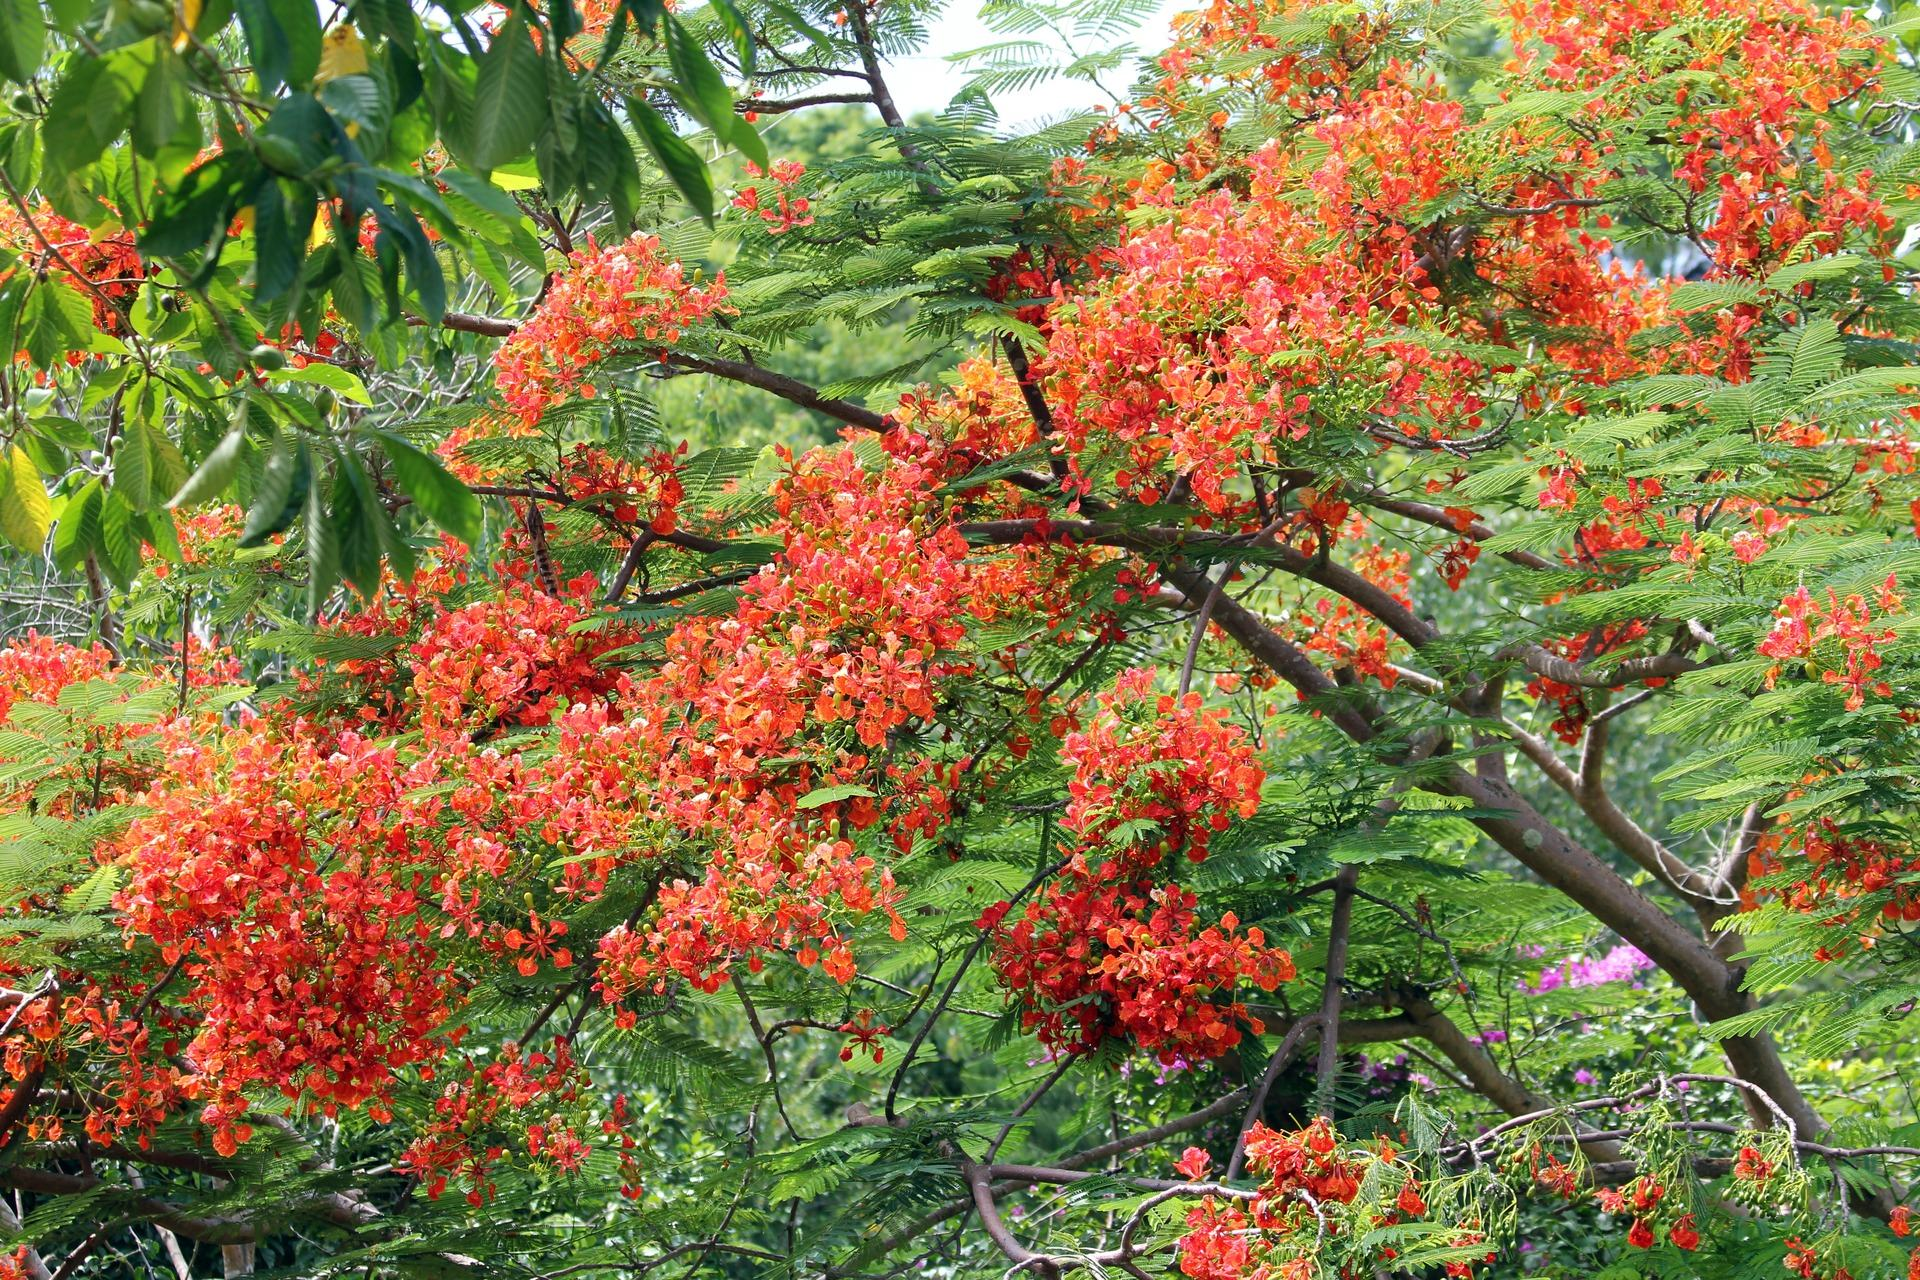 Red flowers on green trees, background